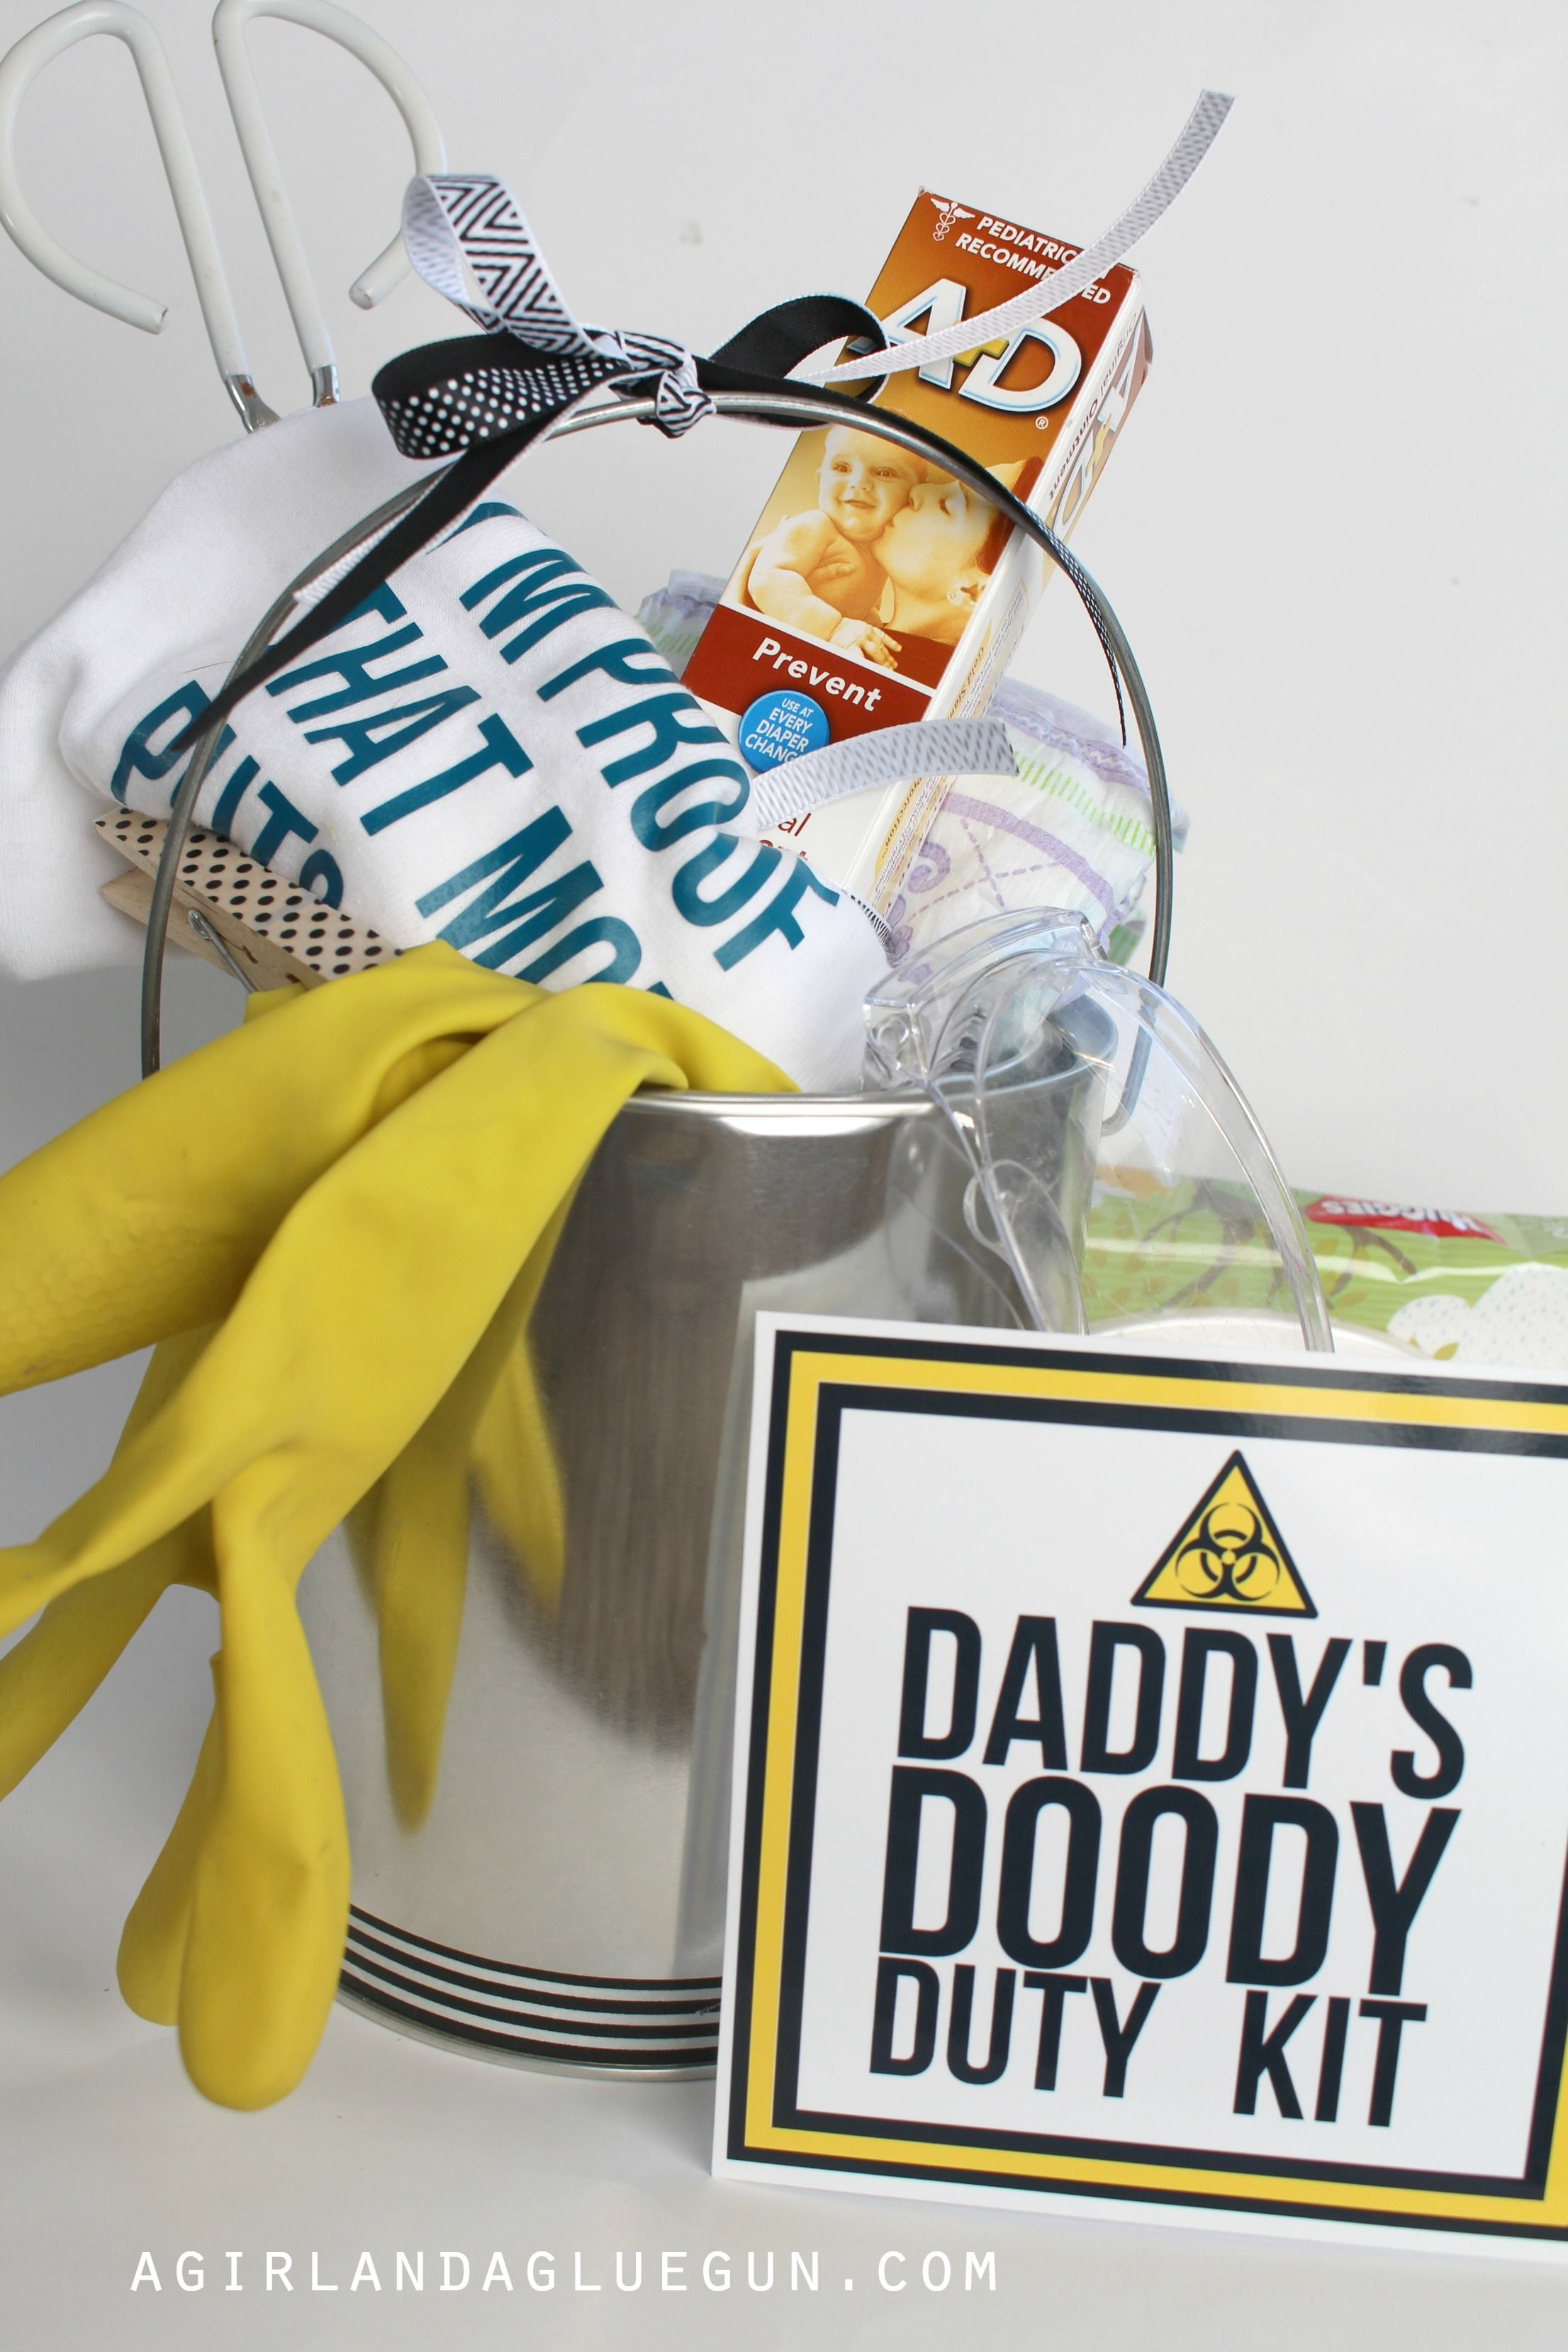 Funniest Baby Shower Gifts : funniest, shower, gifts, Funniest, Shower, Gifts, Funny